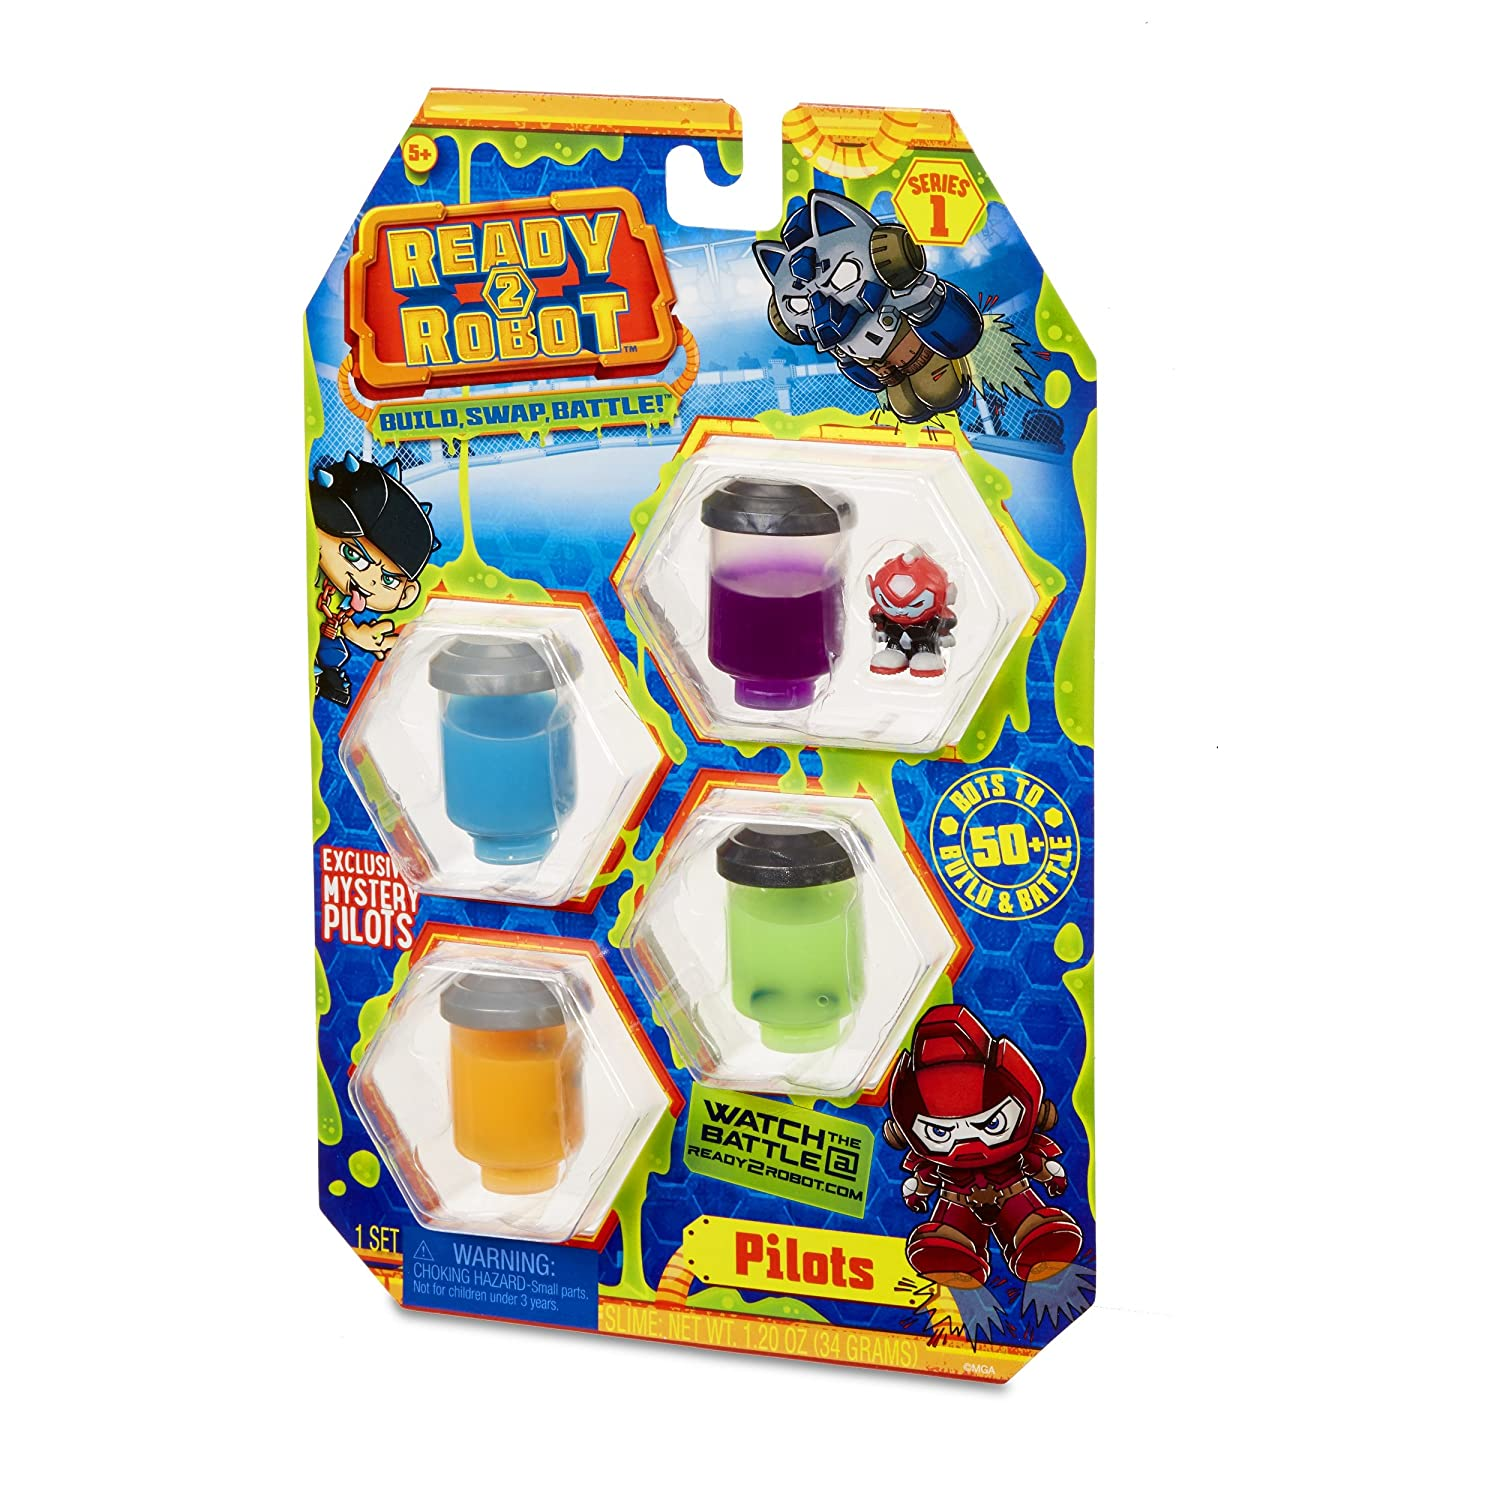 Ready to Robot Pilots Style 2 Collectable Toy, Multicolor